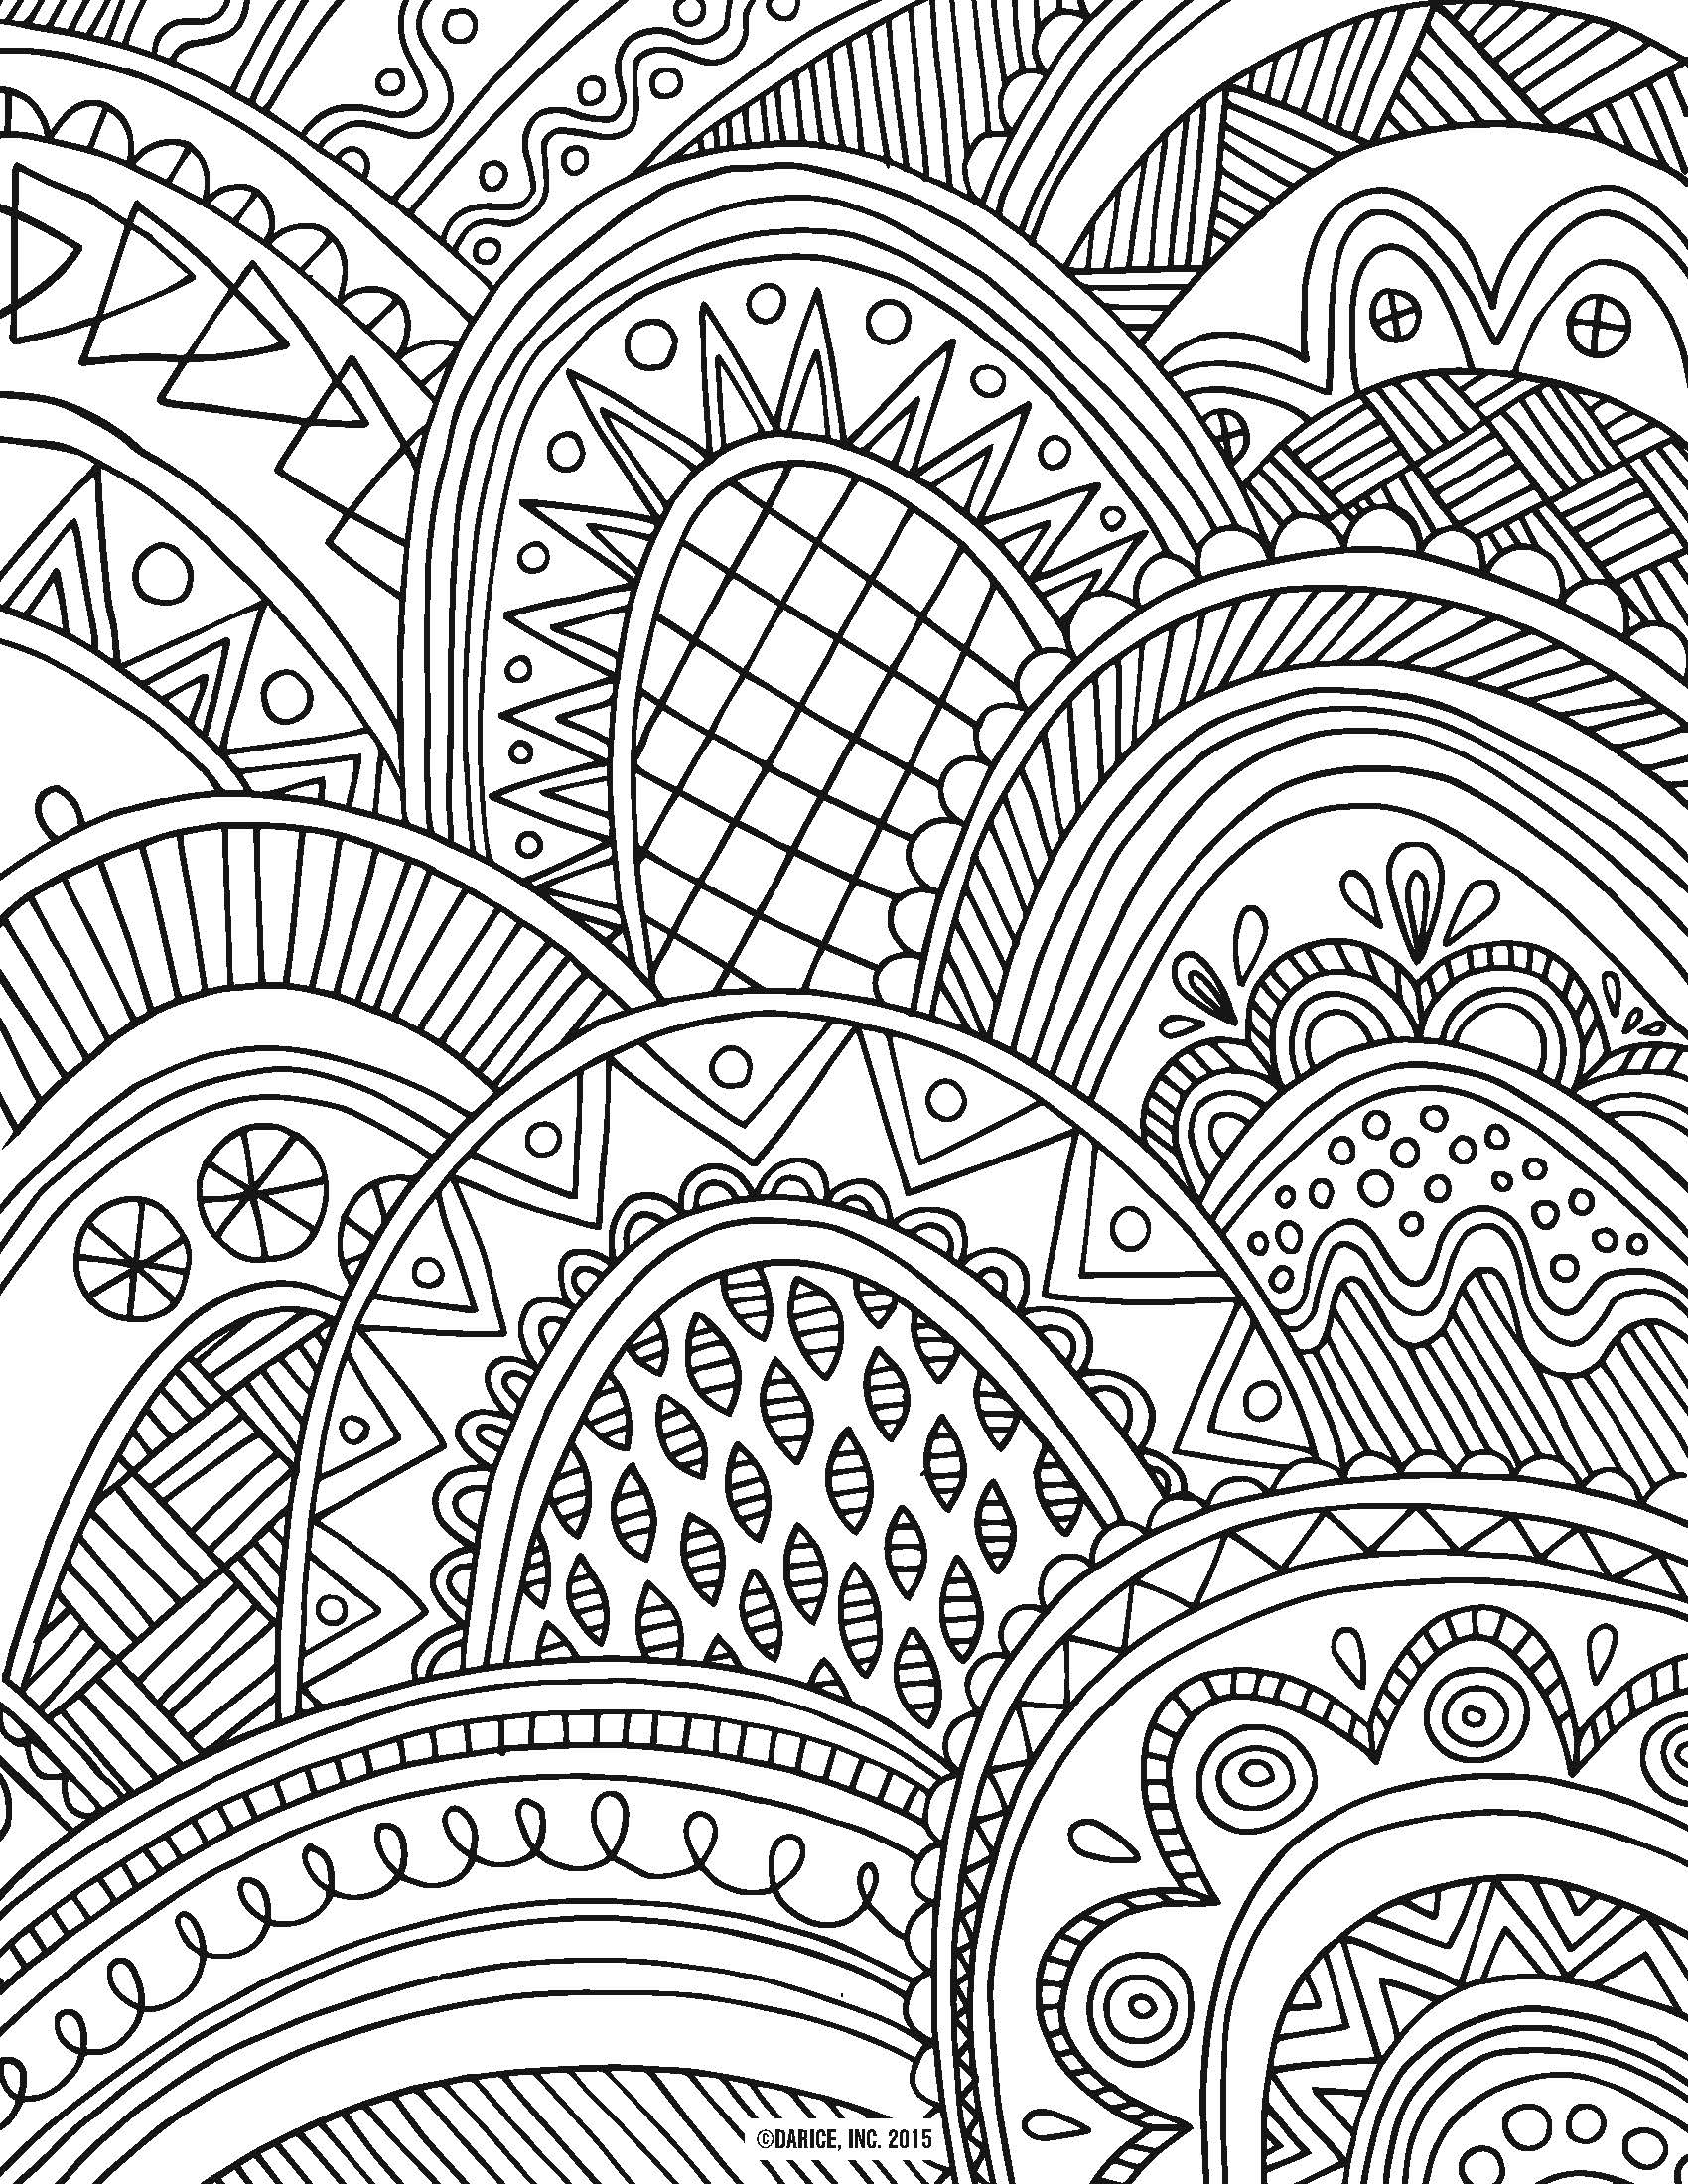 printable pages to color free printable trolls coloring pages free printable color to printable pages